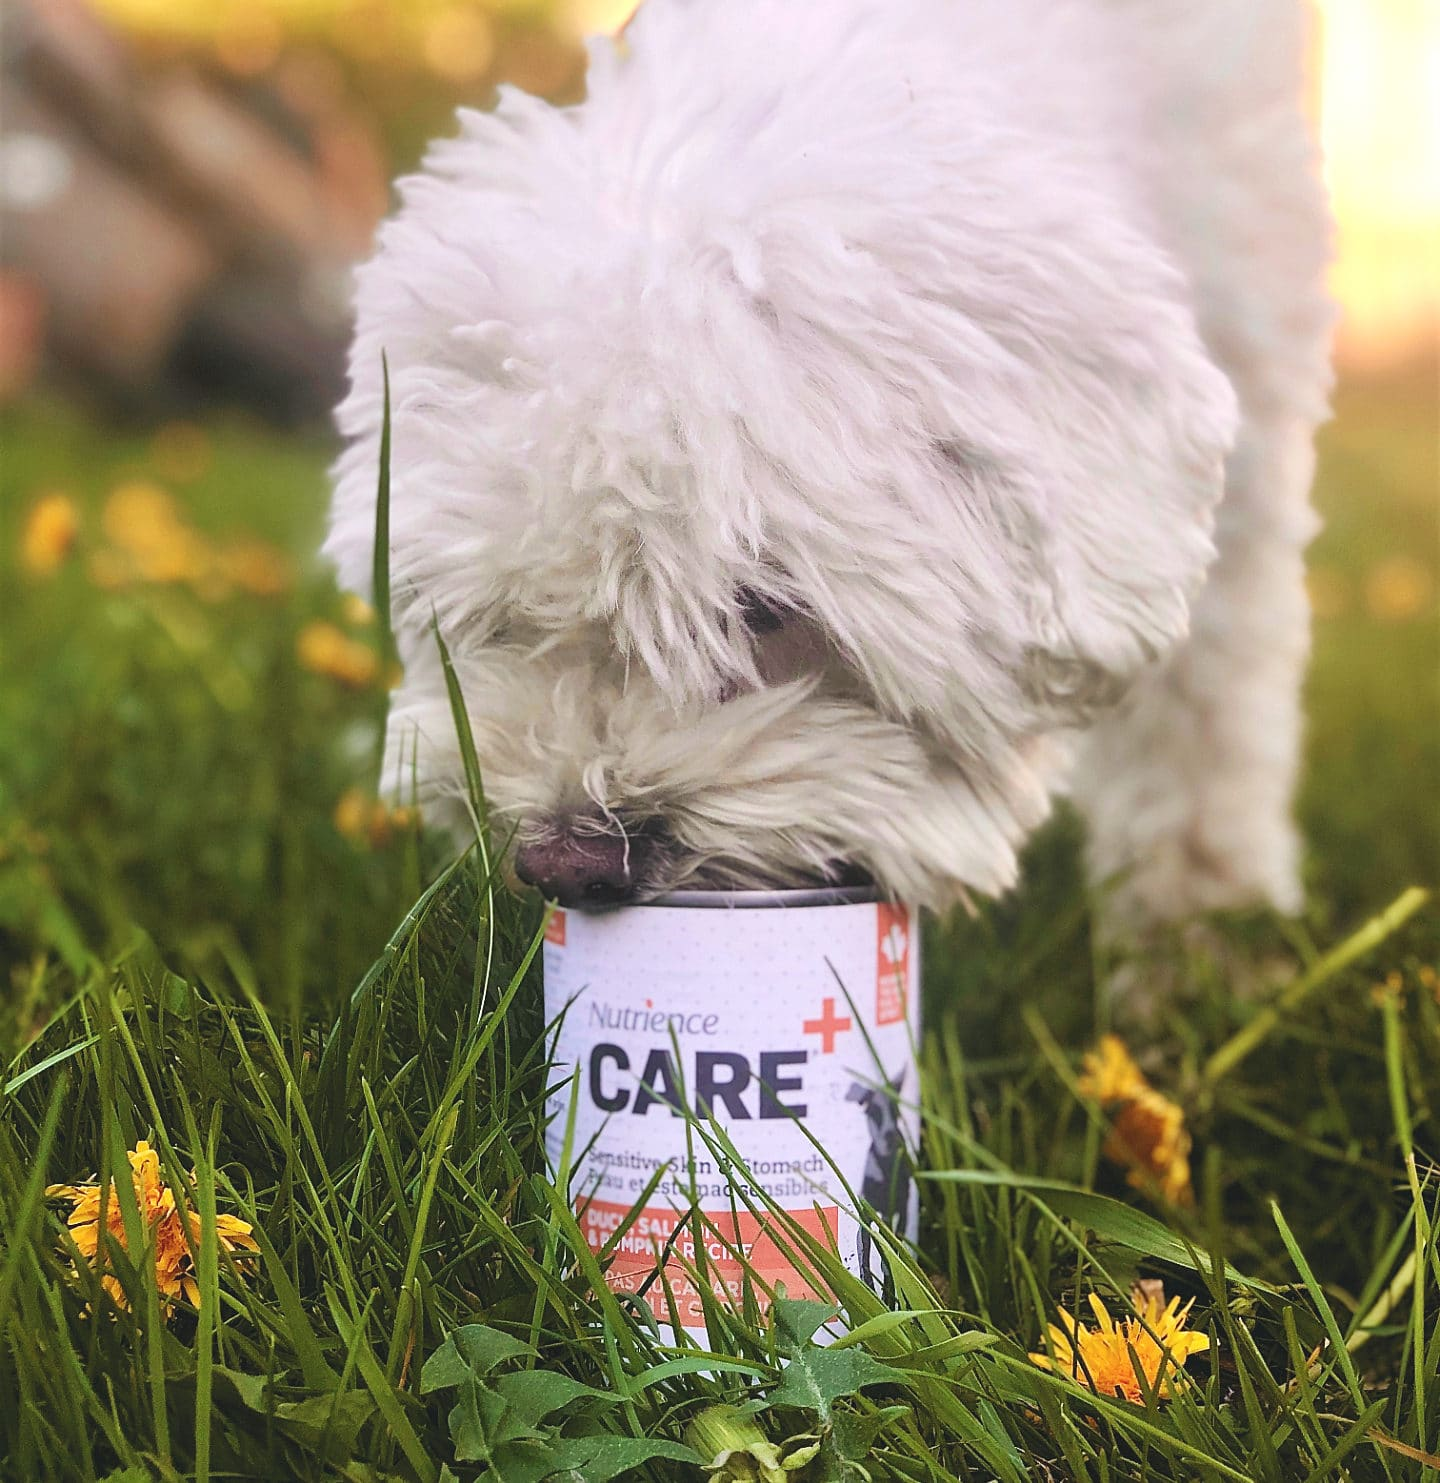 Care can